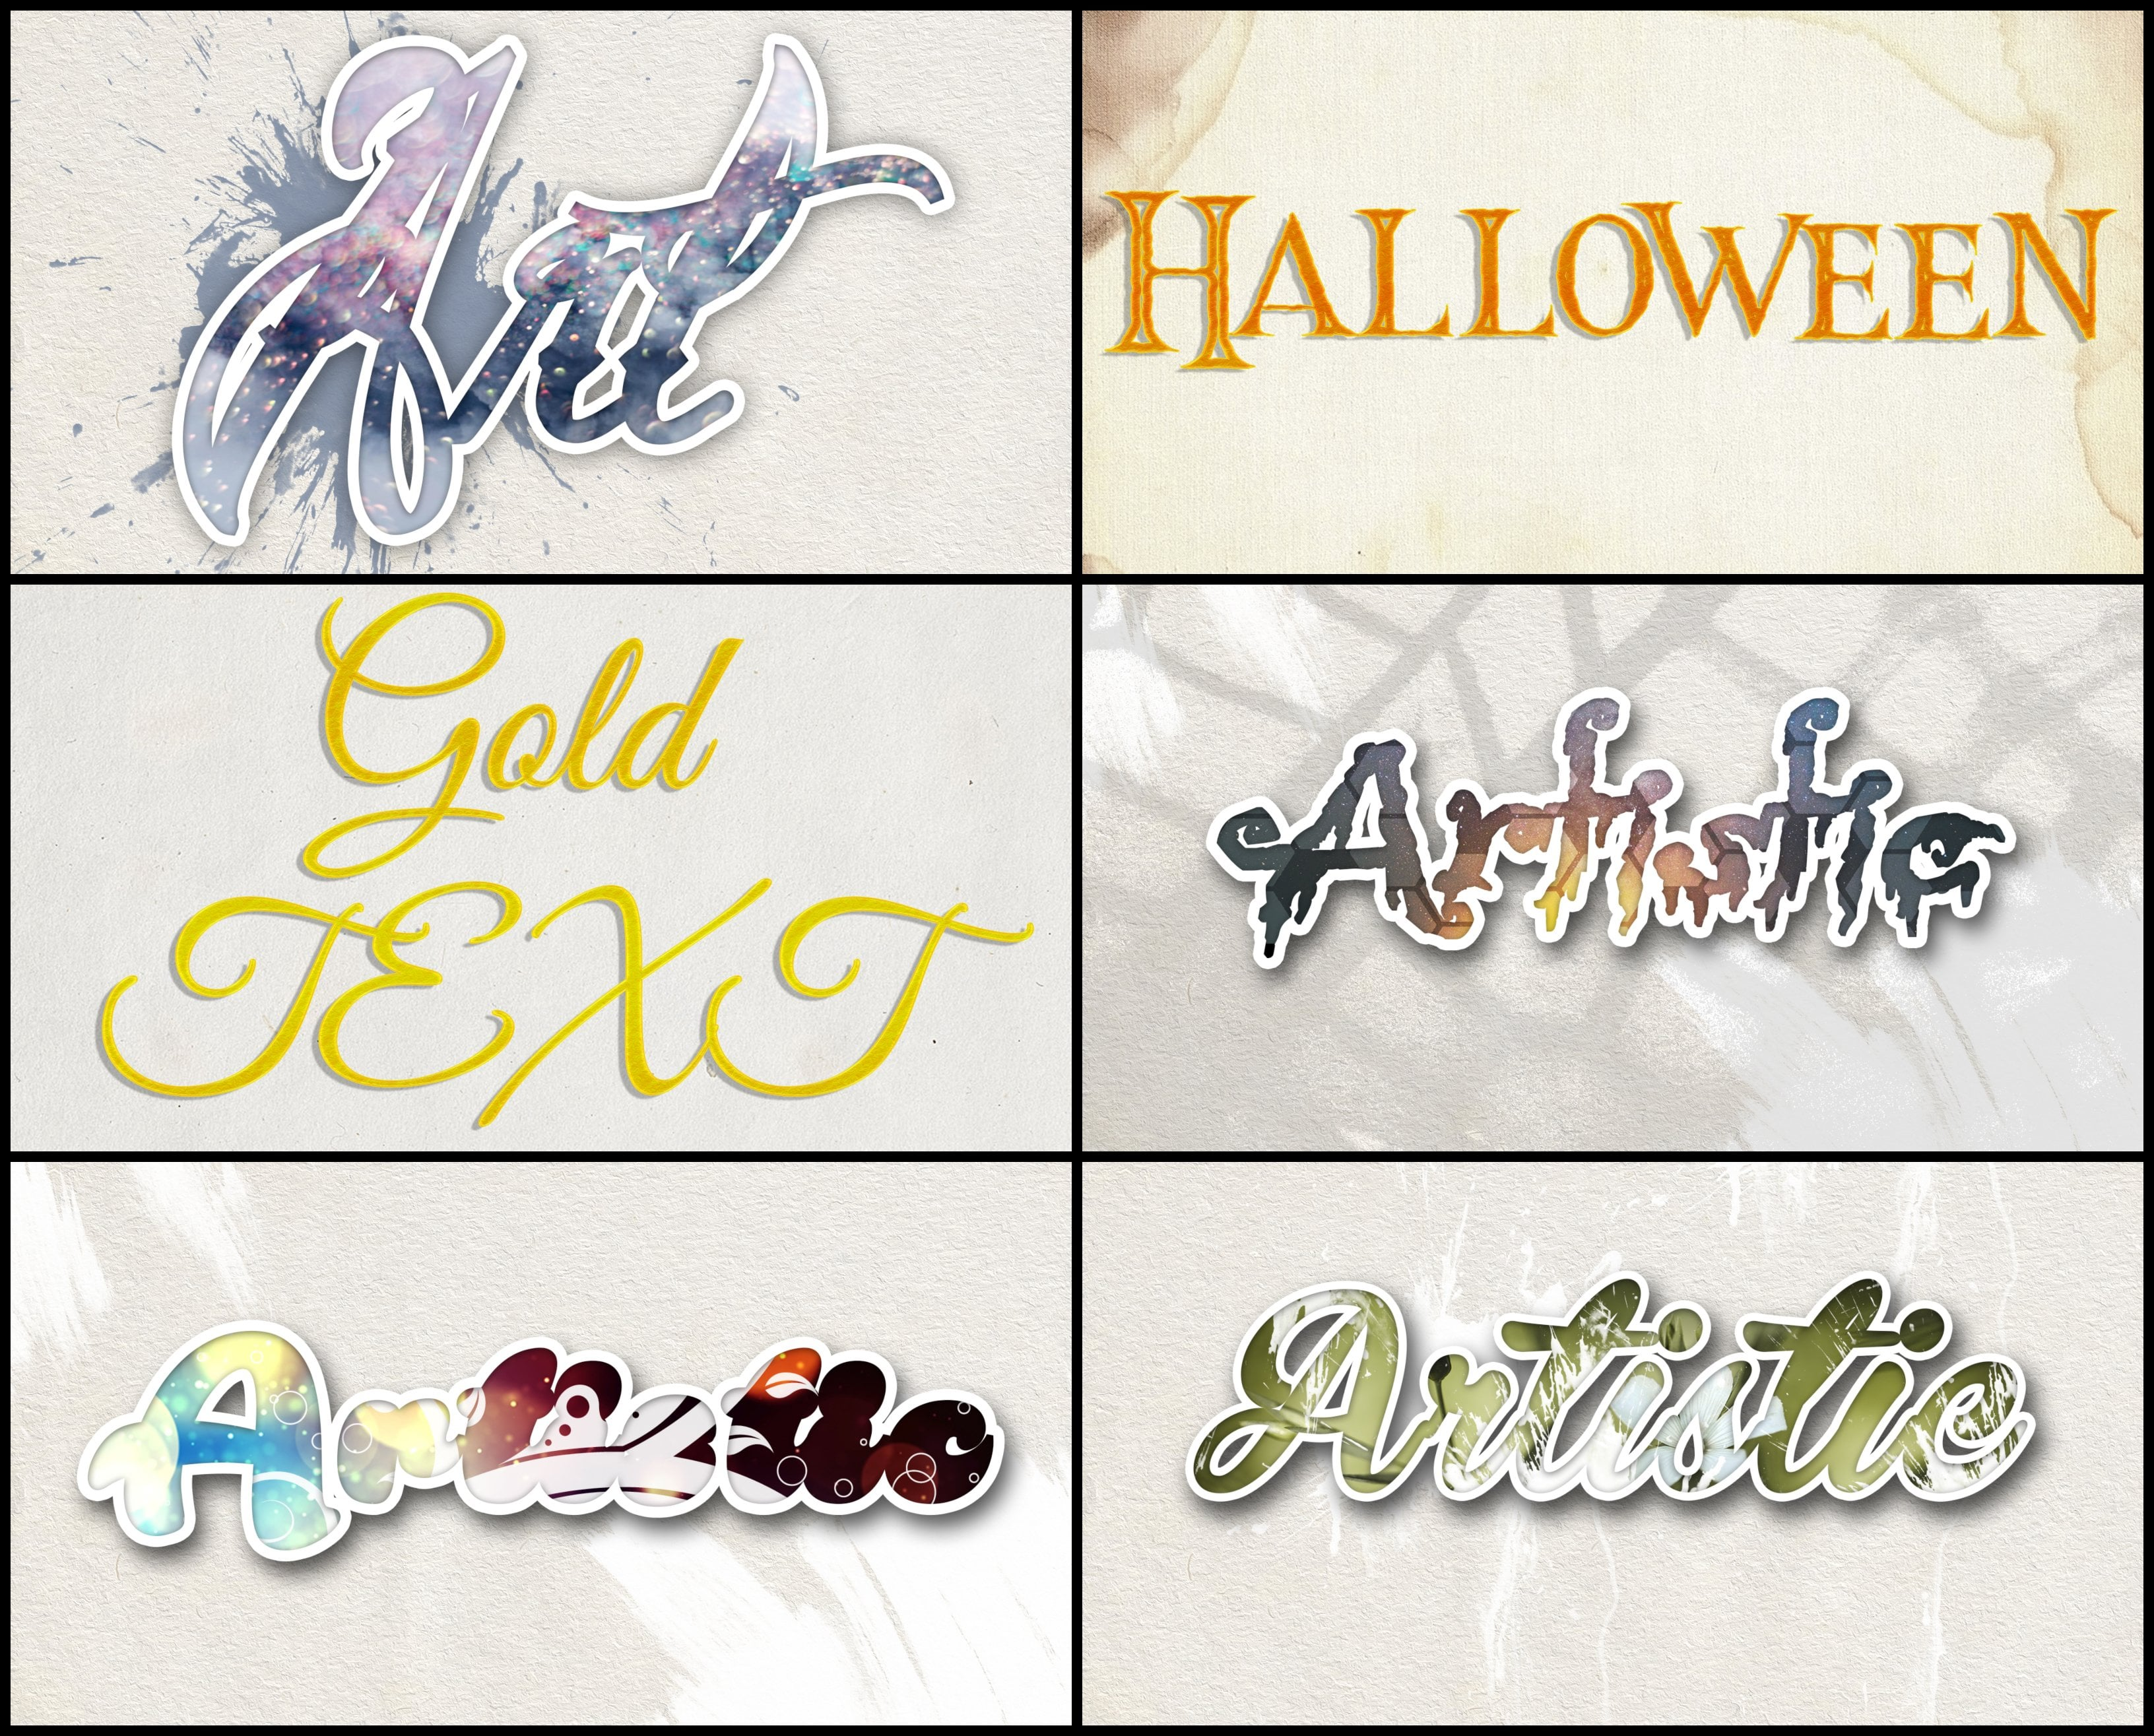 Photoshop Elements Text Effects - 40 Different Styles - 5